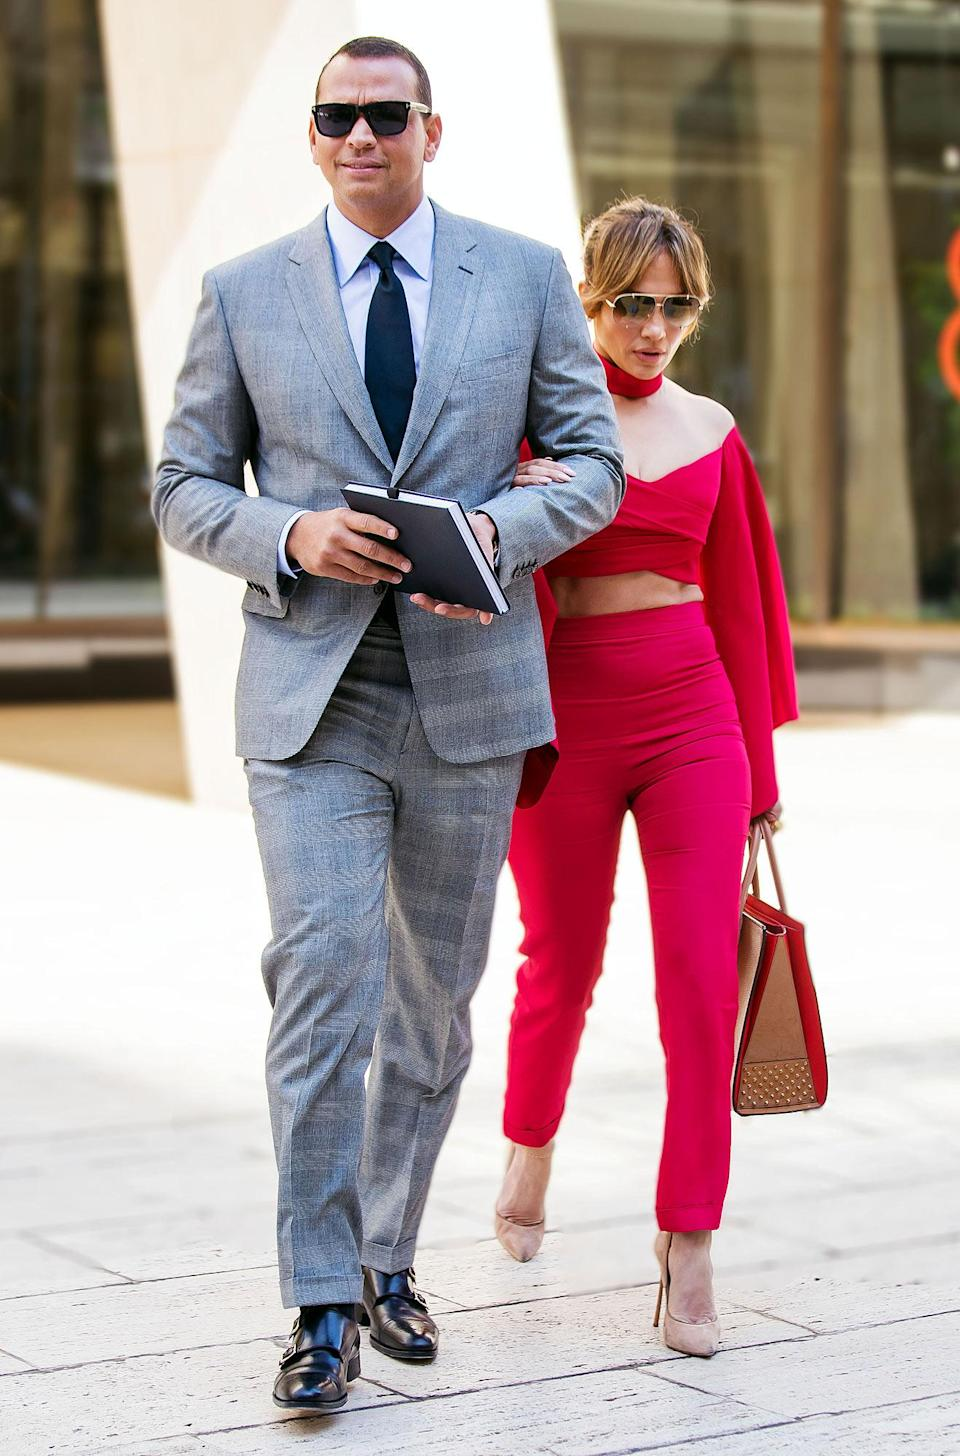 "<p>PEOPLE <a href=""https://people.com/celebrity/jennifer-lopez-alex-rodriguez-dating/"" rel=""nofollow noopener"" target=""_blank"" data-ylk=""slk:confirmed in March 2017 that the pair were dating"" class=""link rapid-noclick-resp"">confirmed in March 2017 that the pair were dating</a>. </p> <p>""She seems excited,"" a source close to Lopez told PEOPLE at the time. ""He has been around her family and she really likes that he is a dad. She is aware, though, that he is a ladies' man too and is being cautious. For now, it's just fun. She is single and enjoys dating.""</p>"